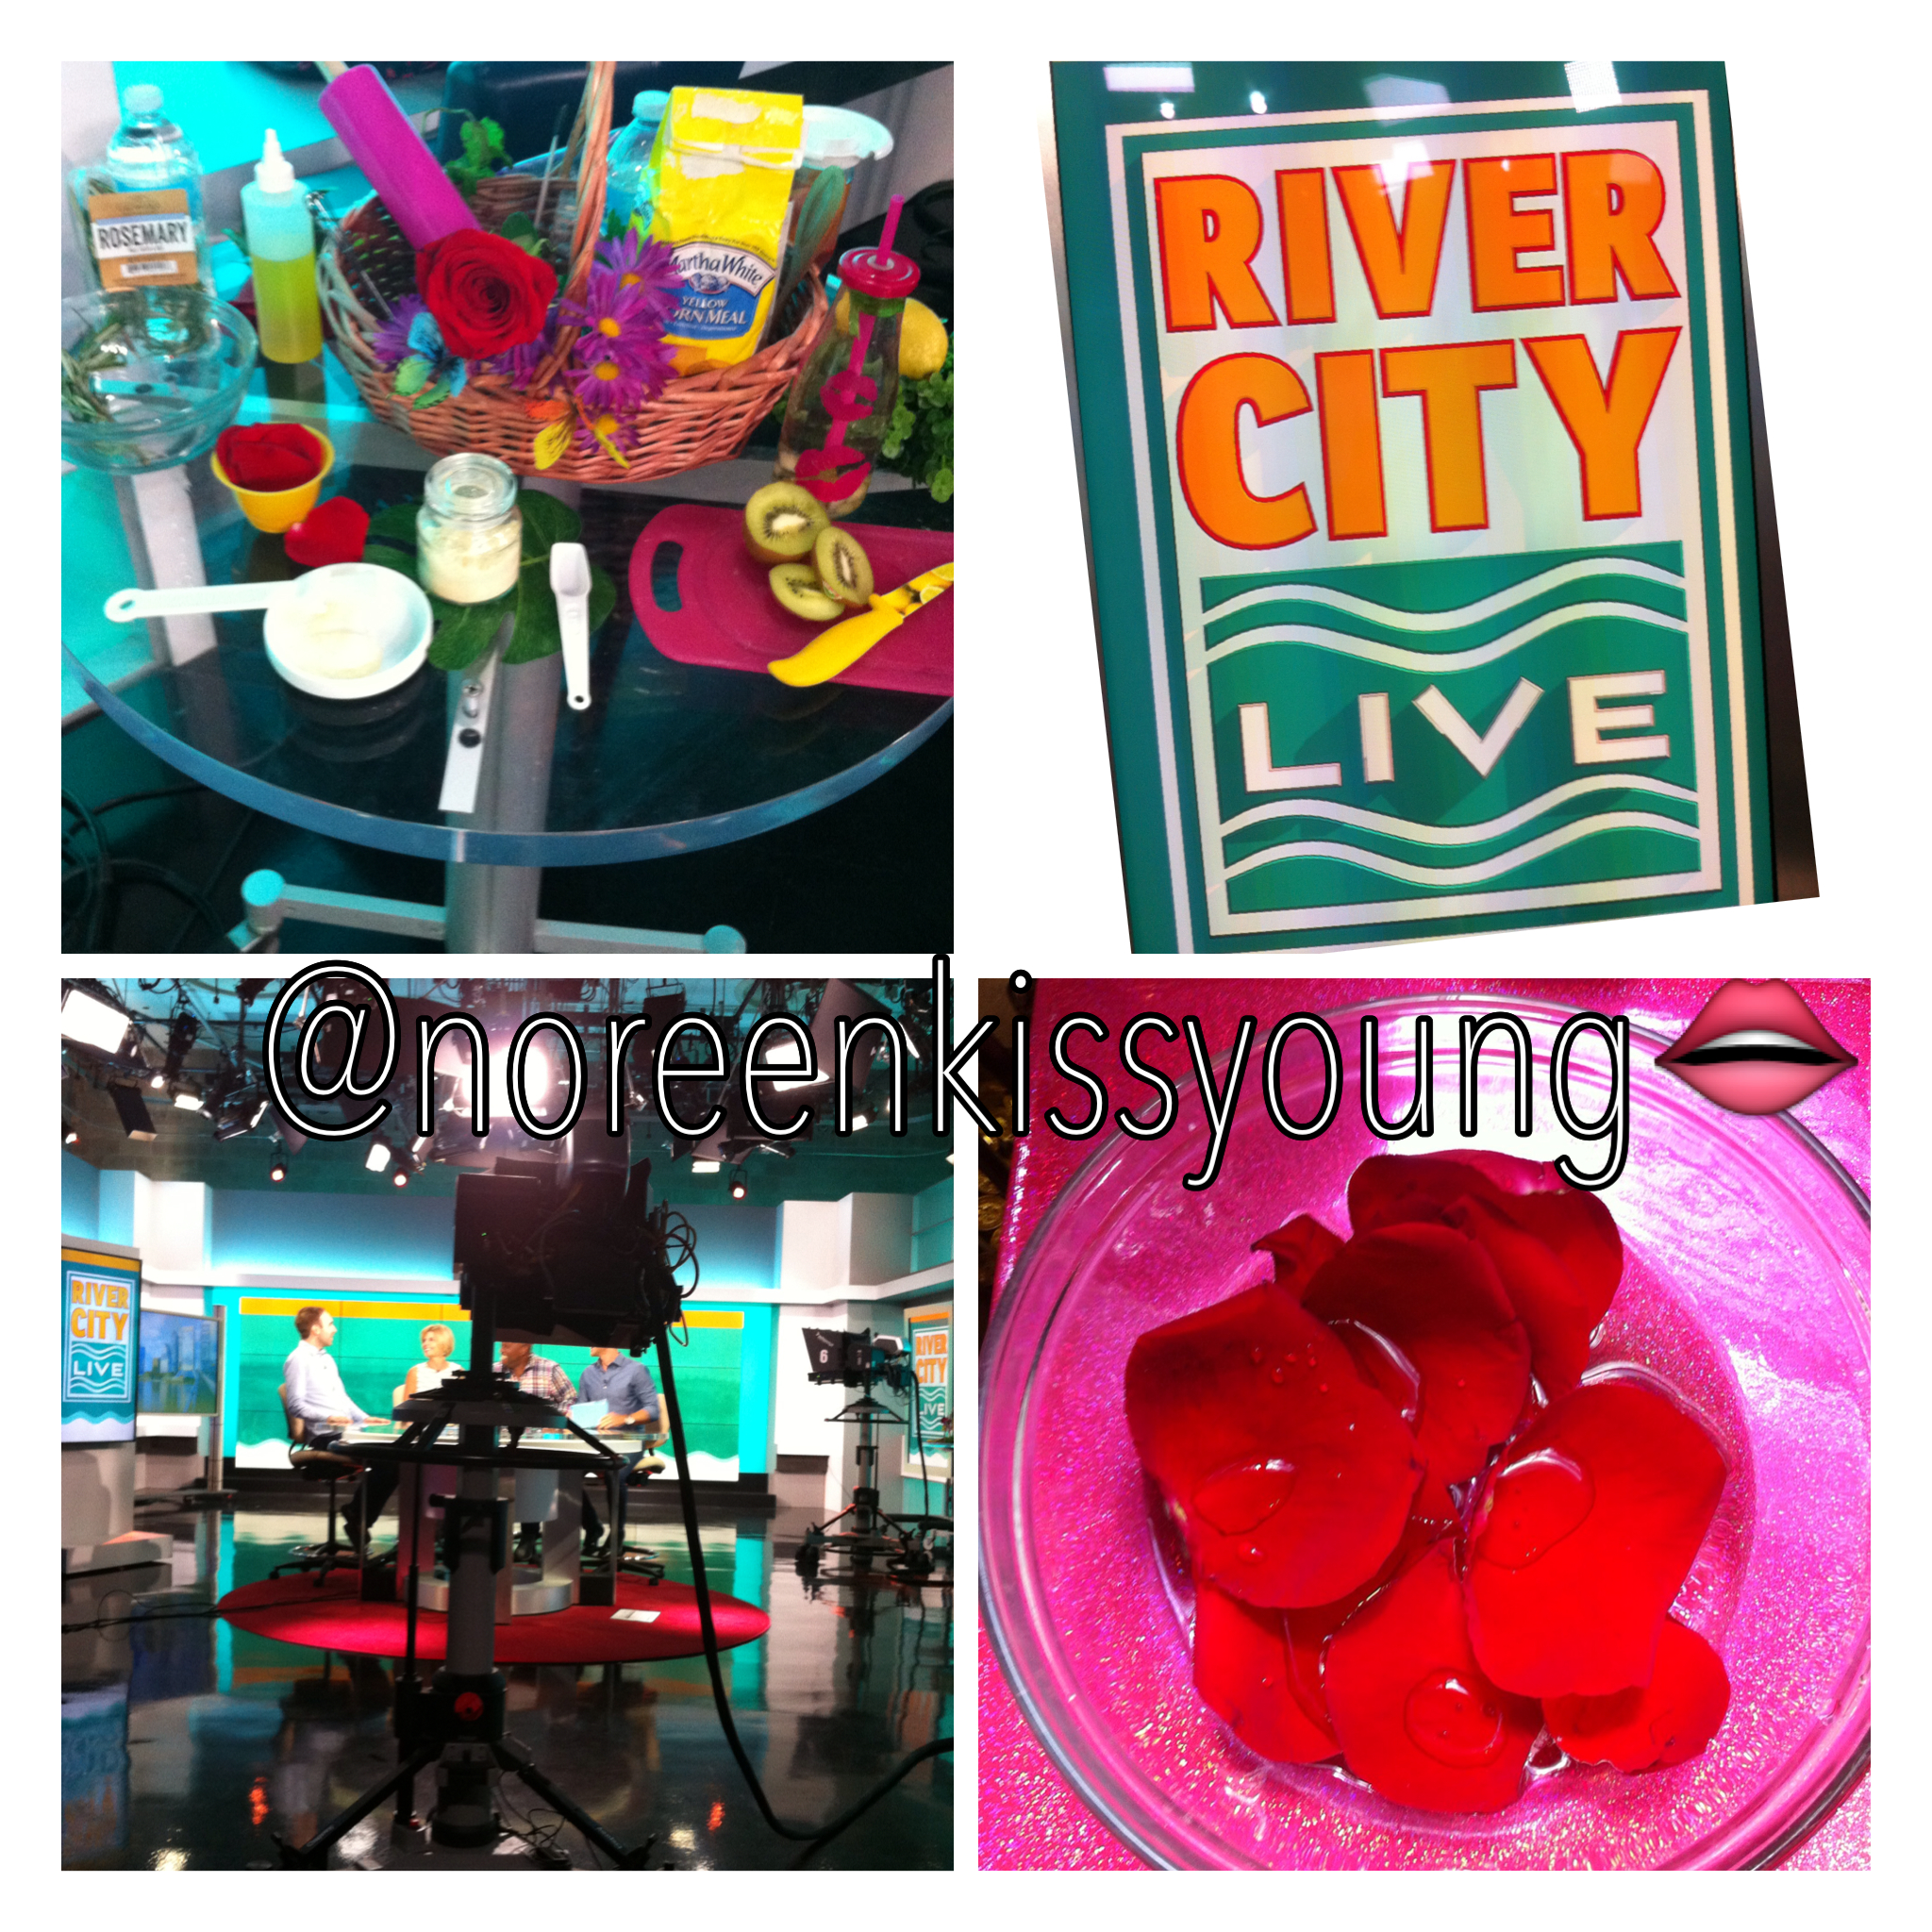 photo River city live 8-2017.JPG